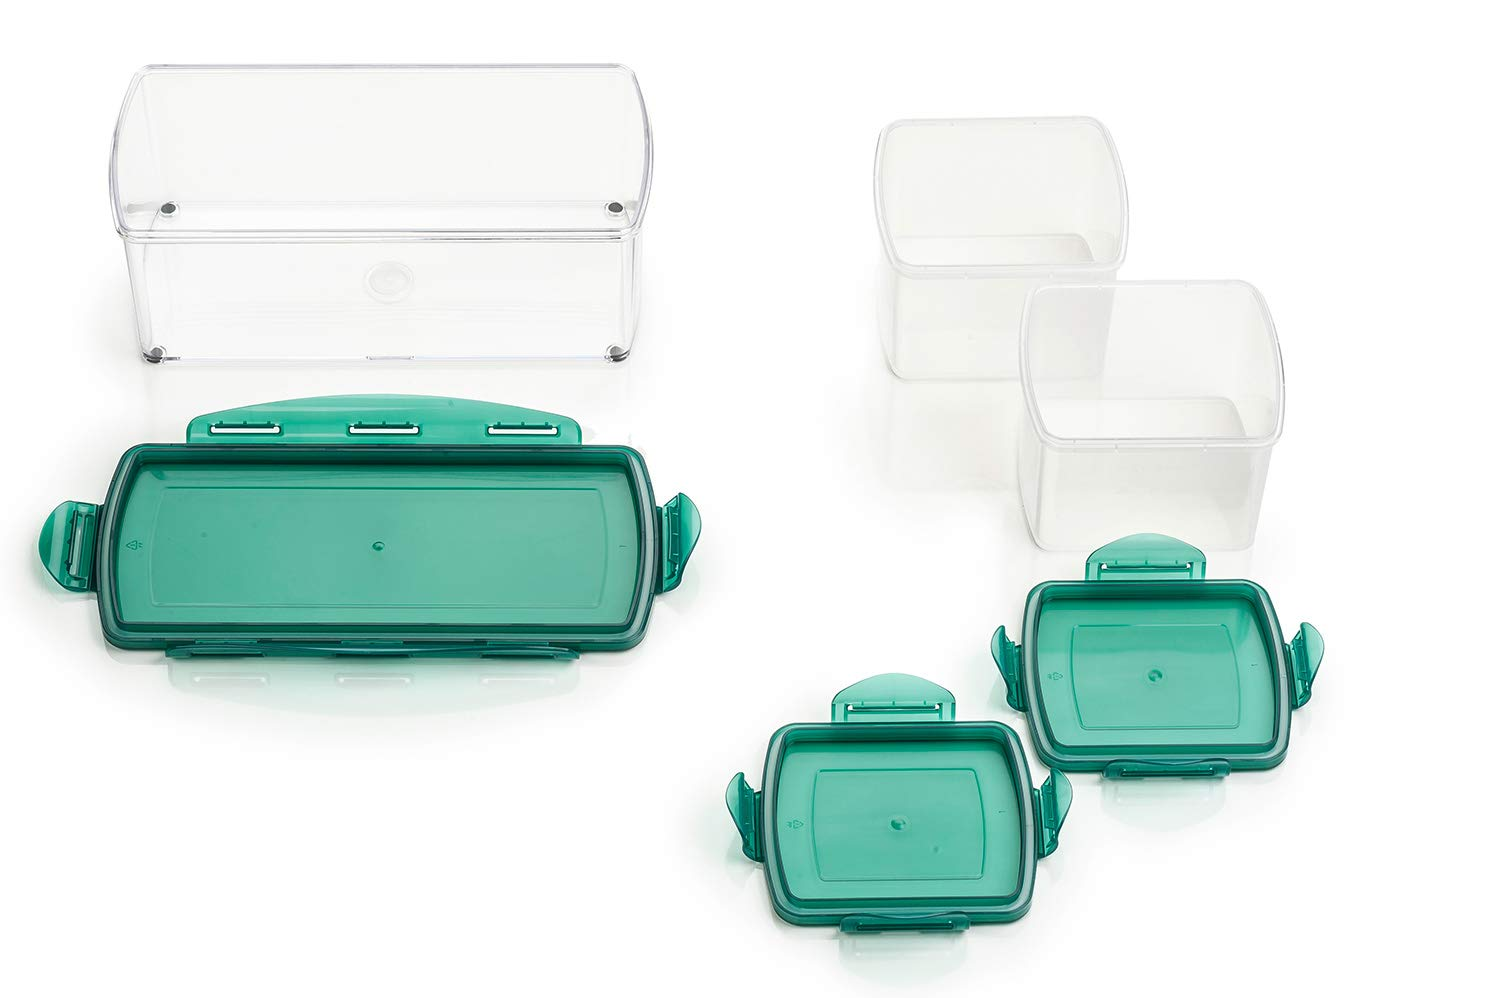 Genius vegetable and fruit slicer made of plastic, Plastic, mint green, 18.3 x 7 x 1.2 cm A33663